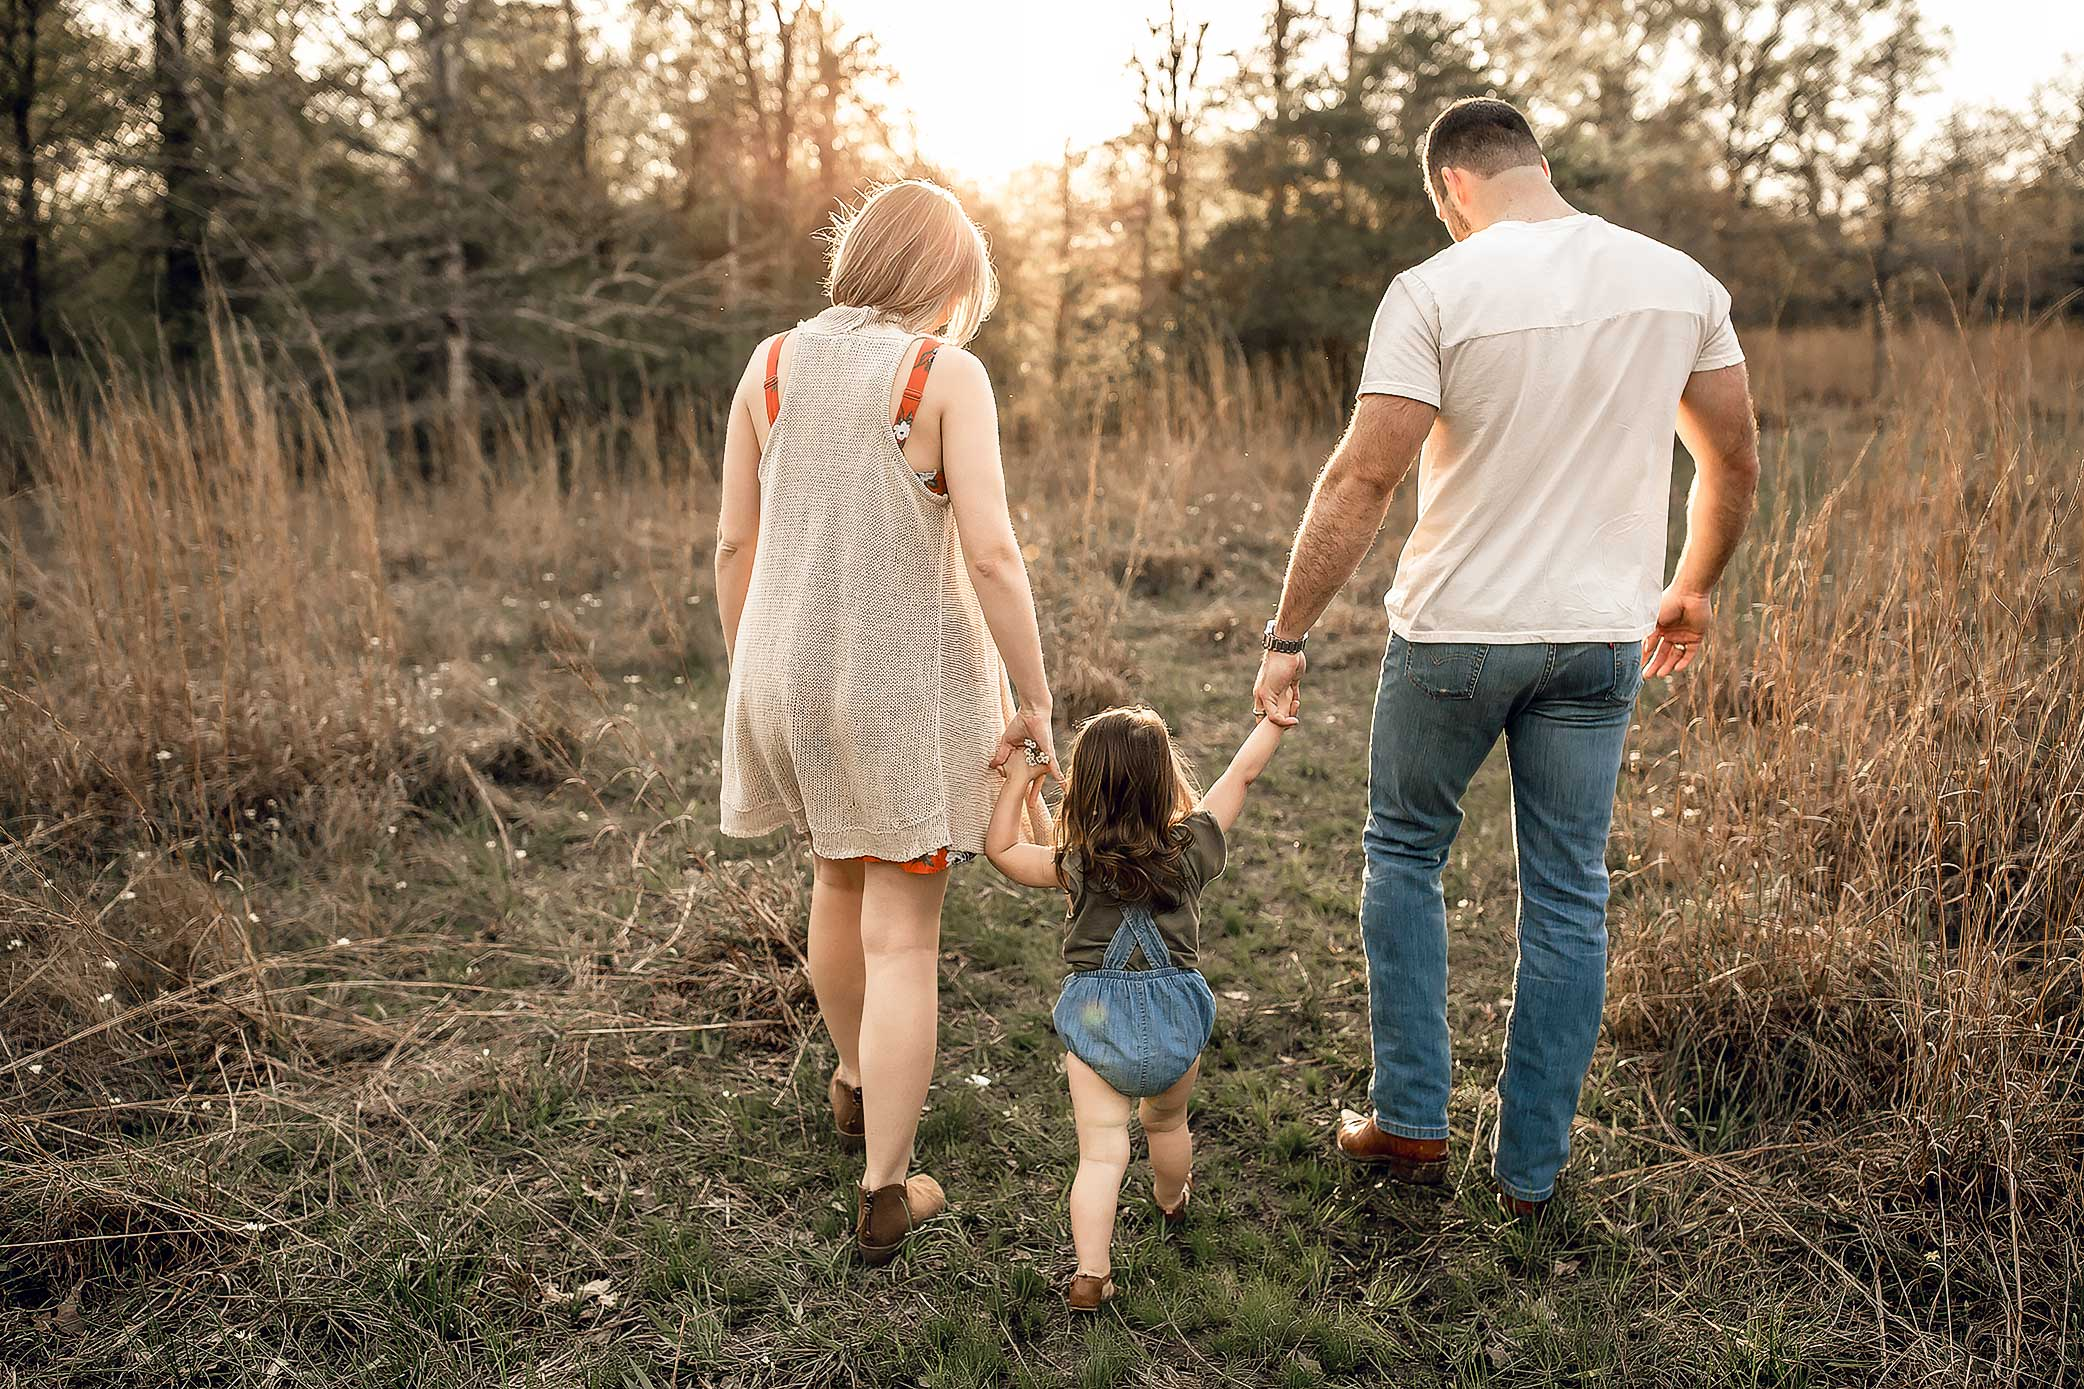 shelby-schiller-photography-sunset-family-pictures-spring-2019-27.jpg